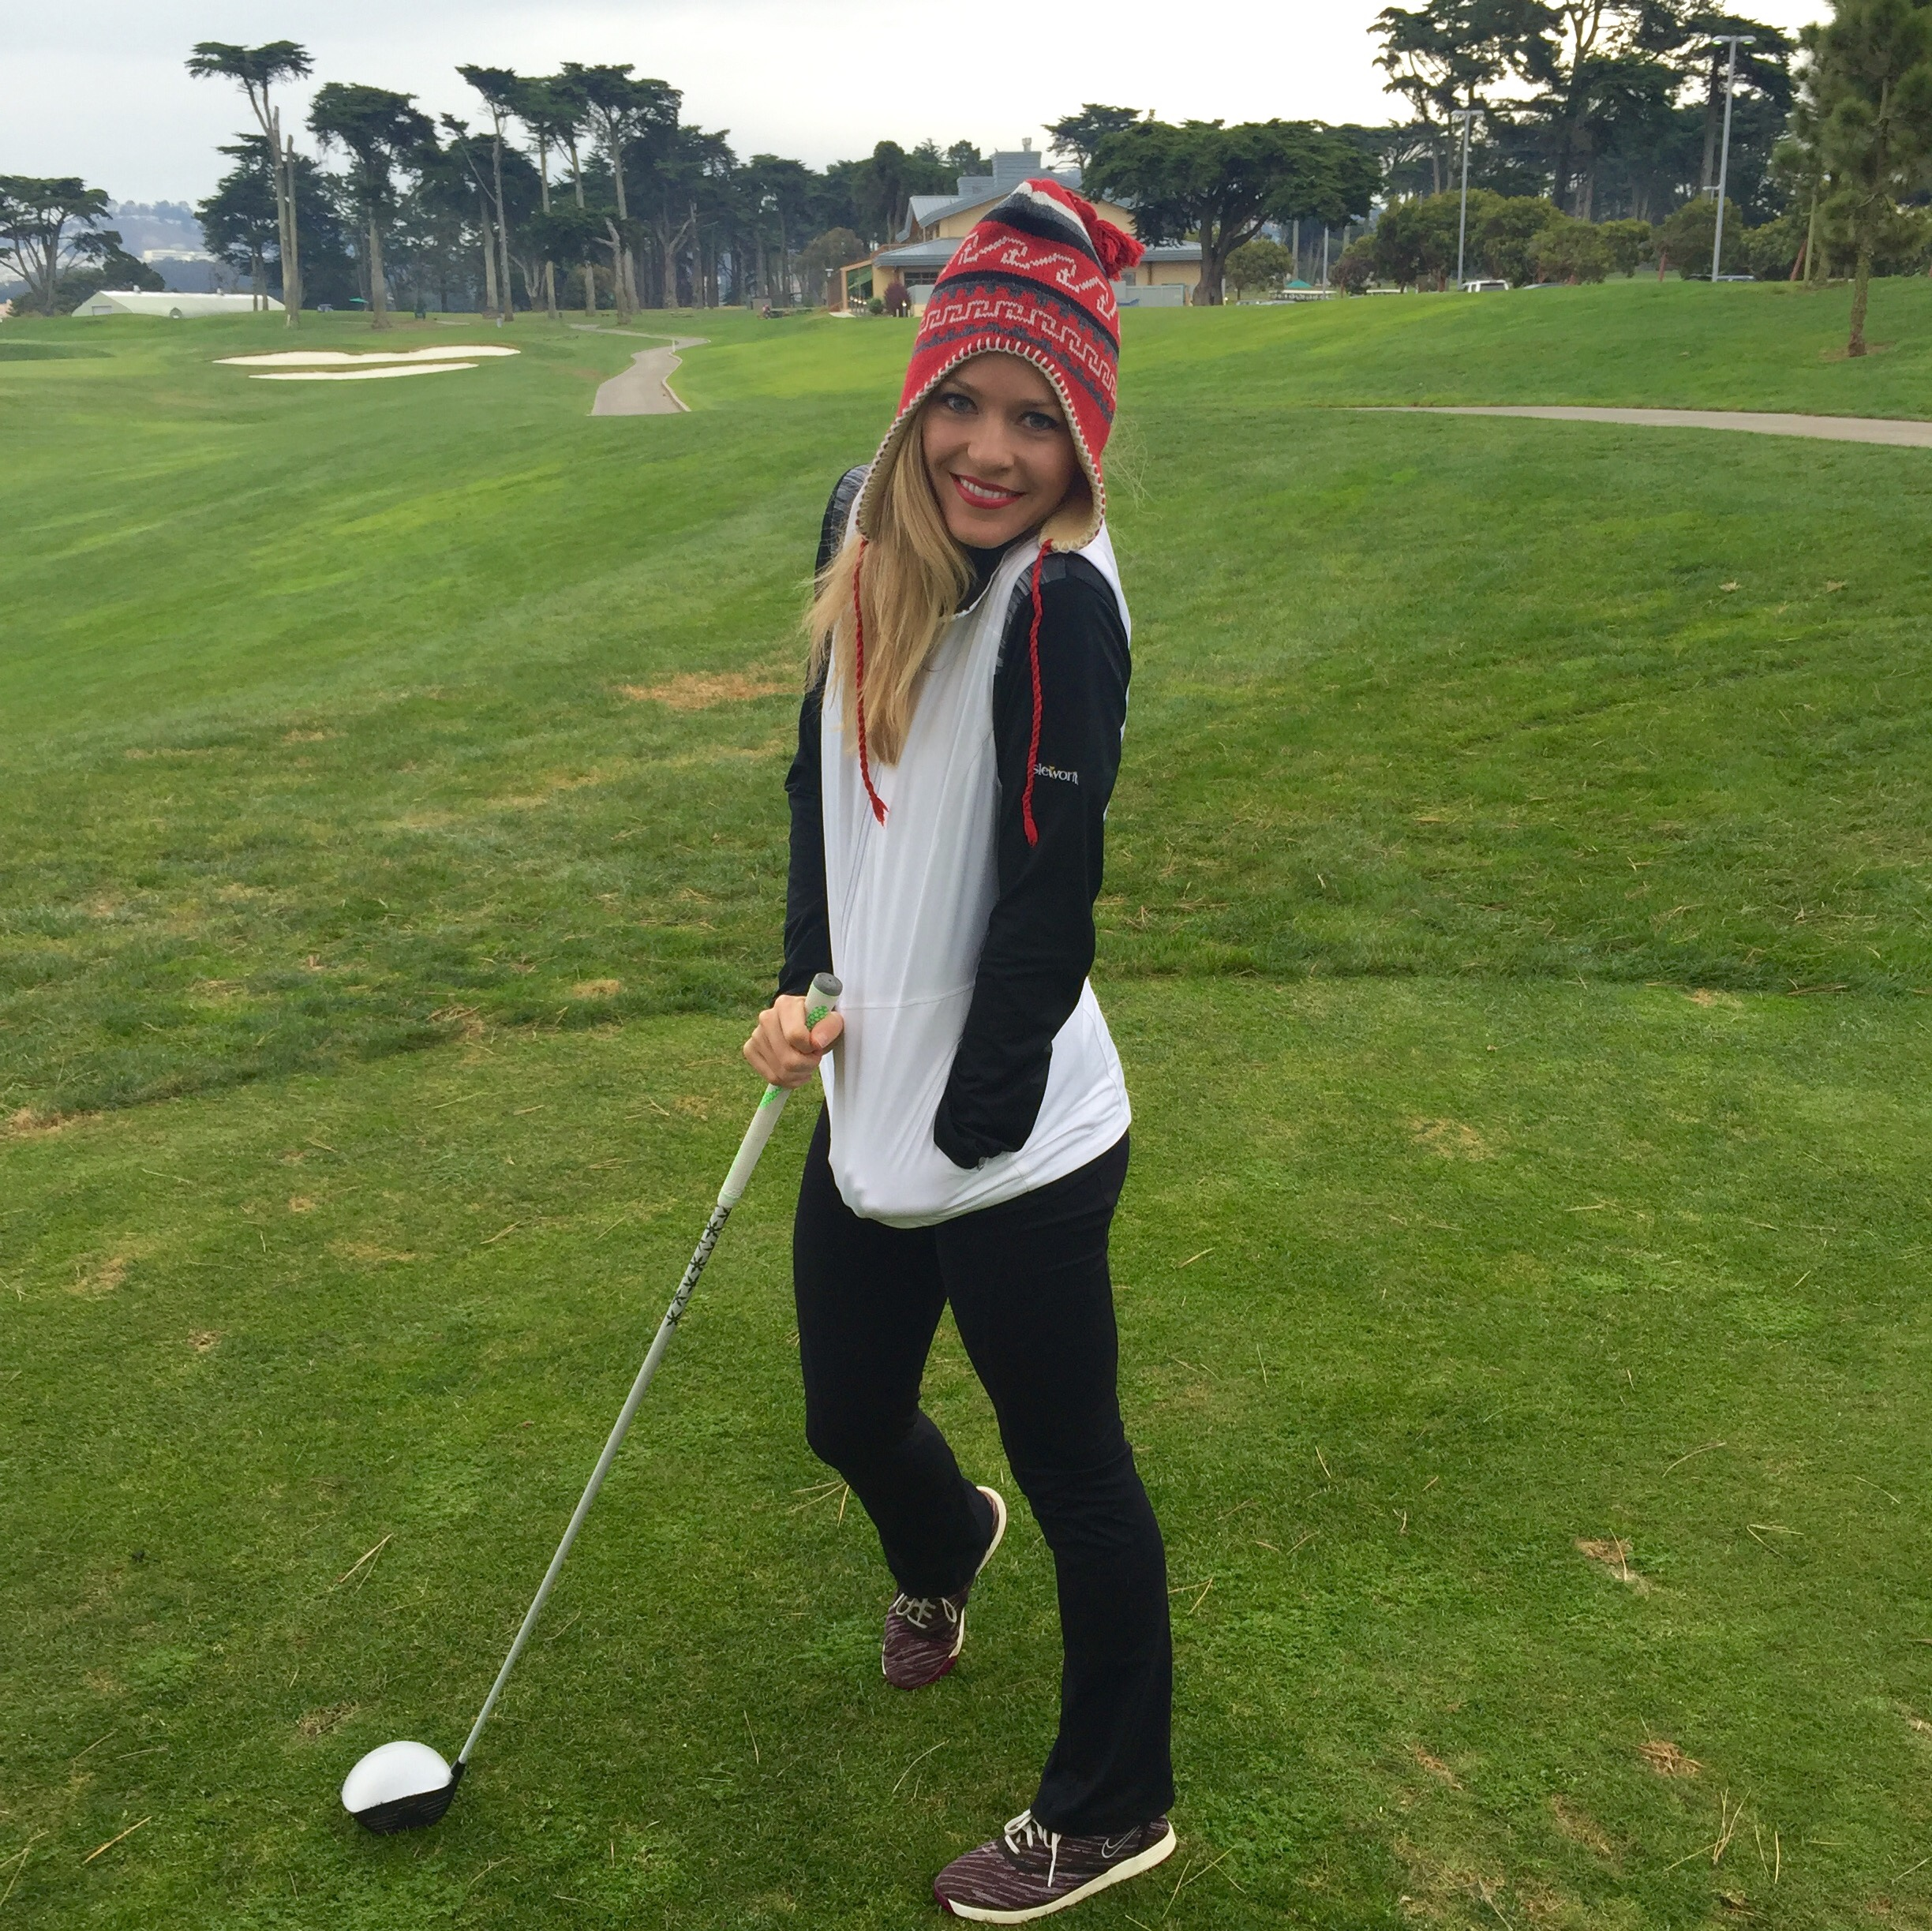 I was so thankful for my warm Antigua reversible vest at Harding Park in chilly San Francisco a couple weeks ago!